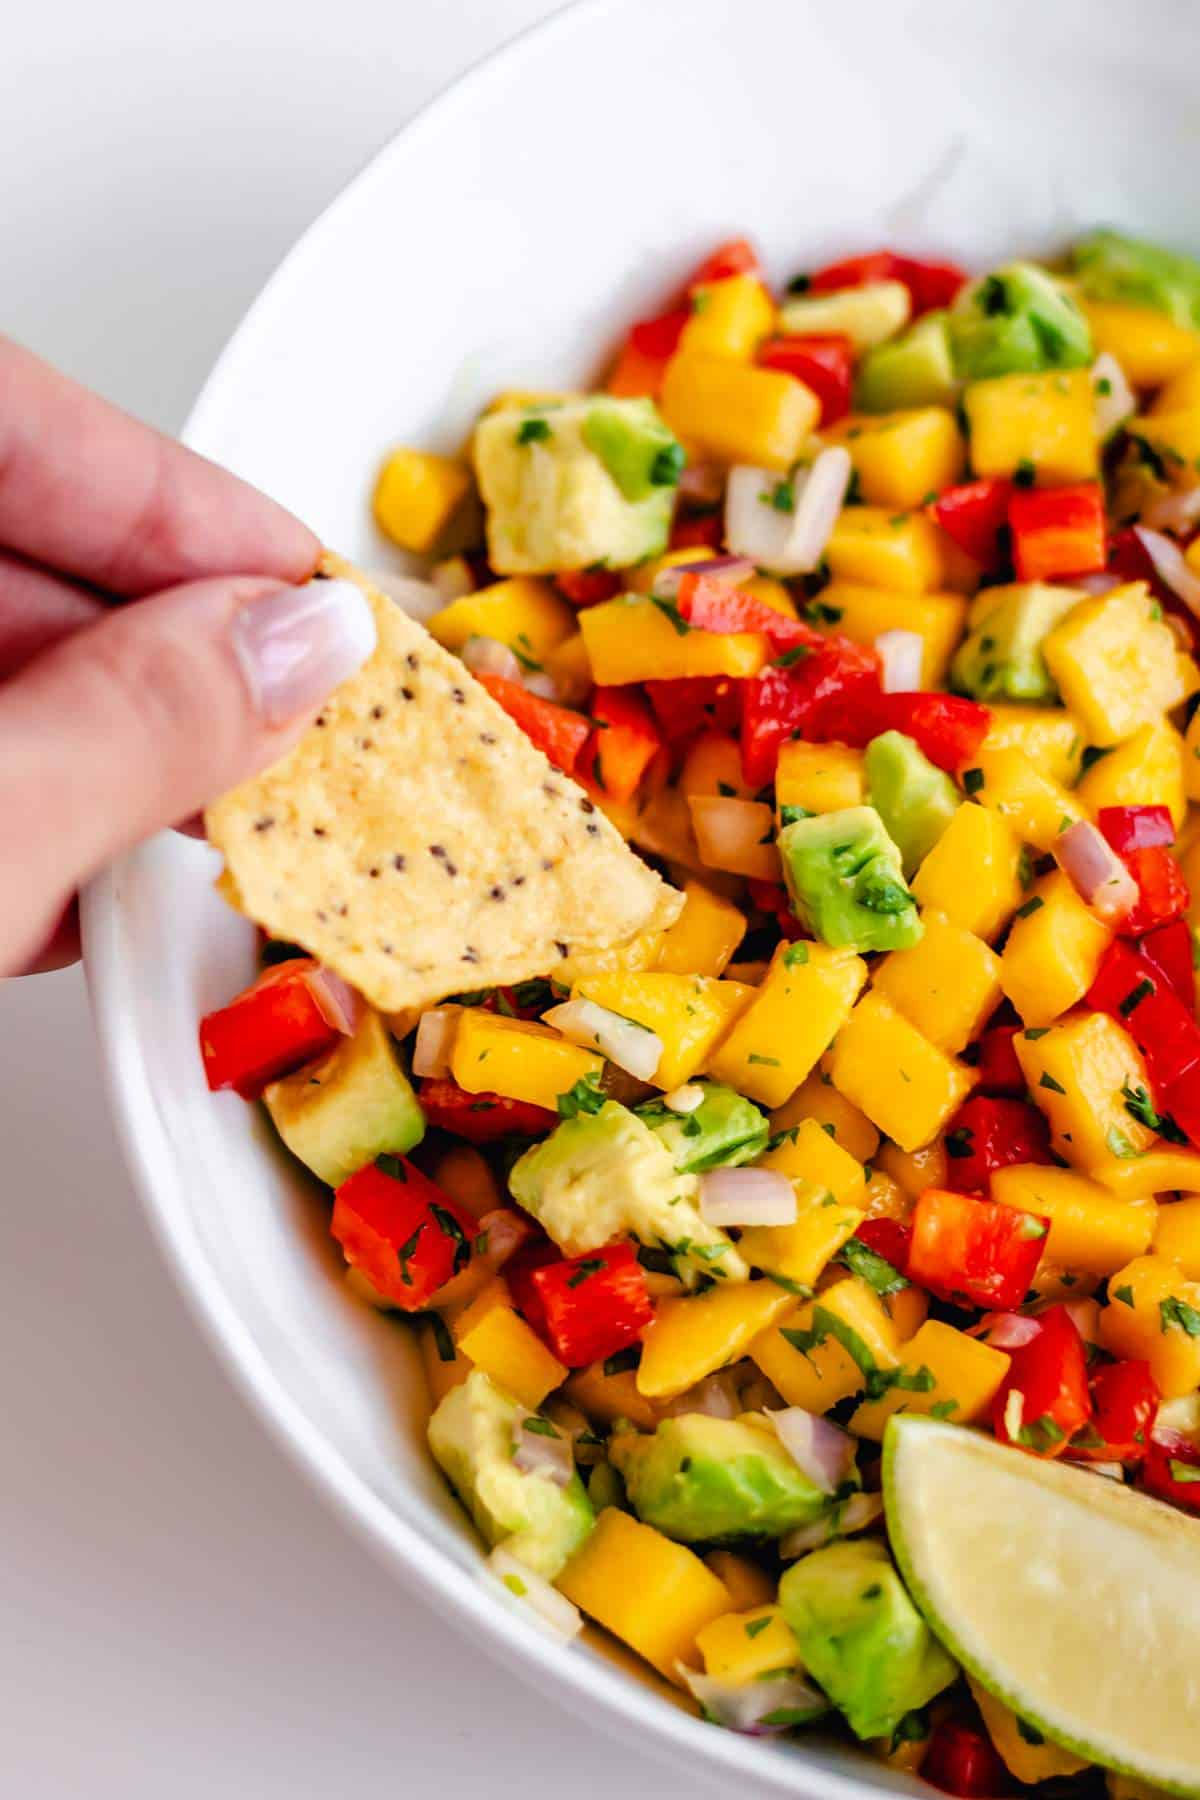 A chip scooping mango and avocado salsa out of a bowl.